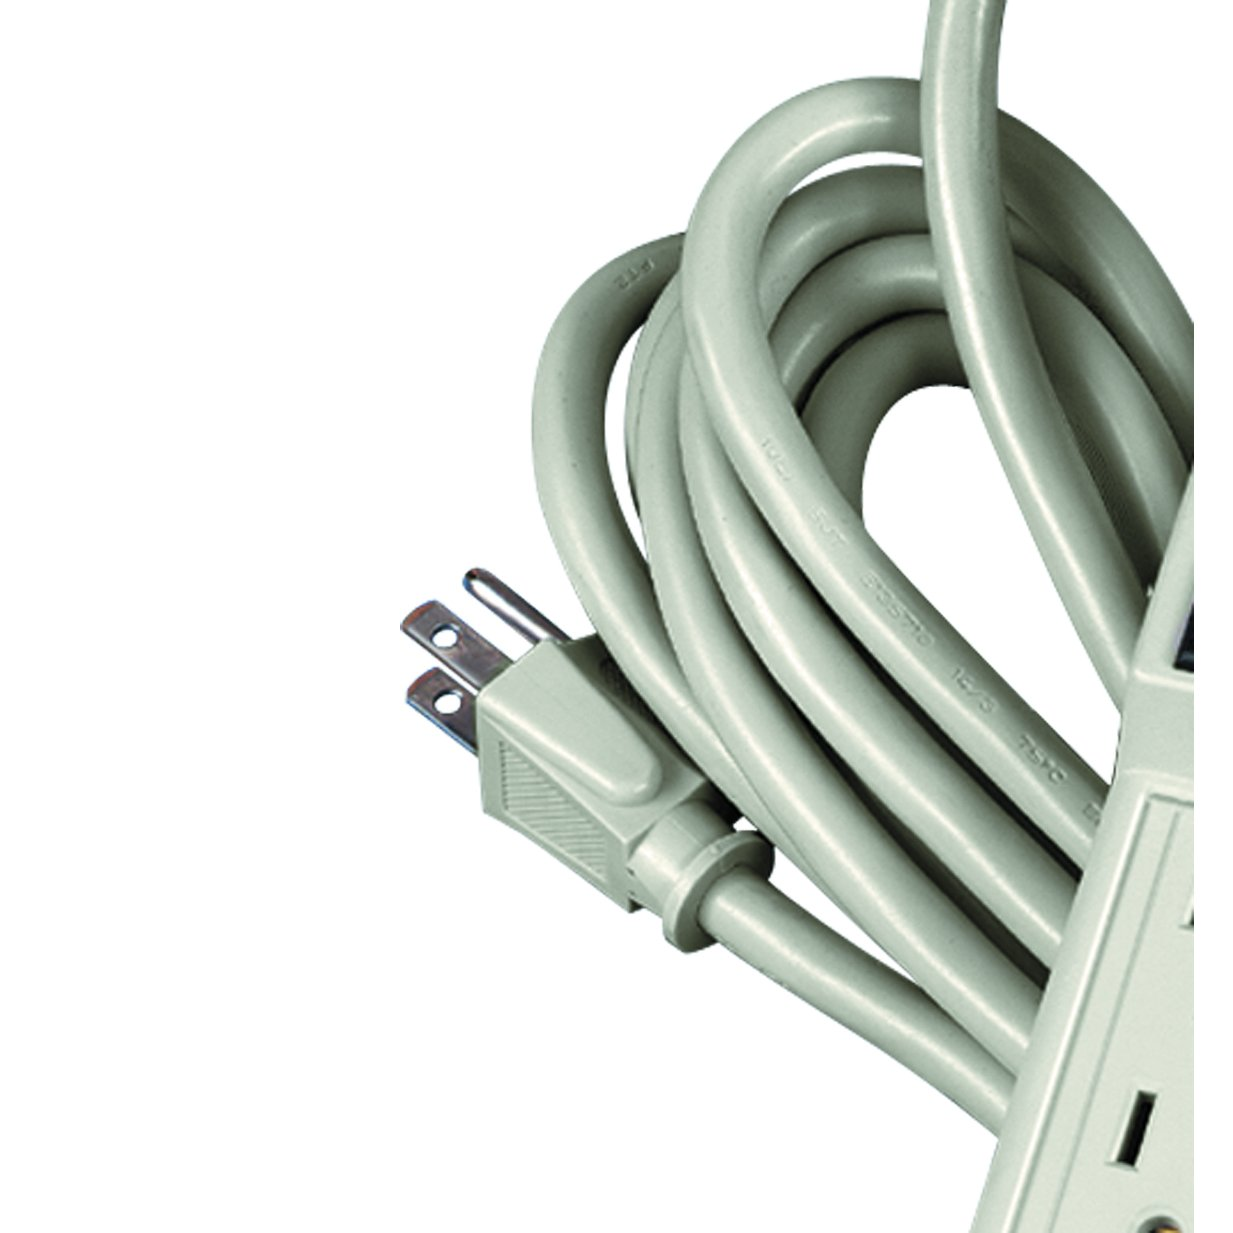 Fellowes 6-Outlet Office/Home Power Strip, 15 Foot Cord - Wall Mountable (99026)